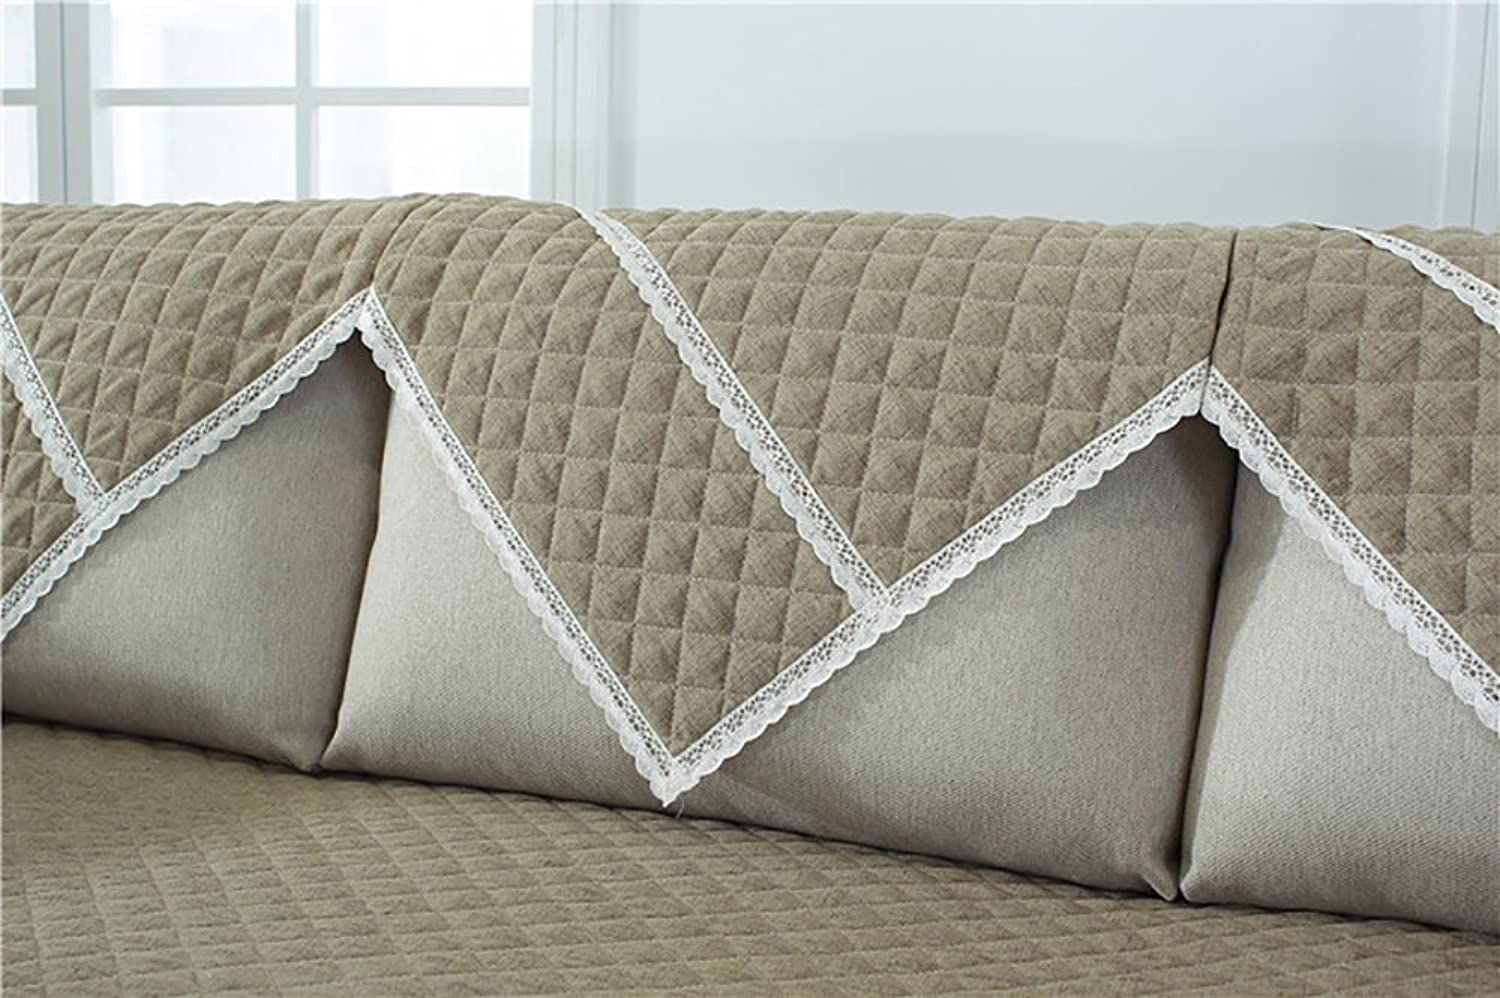 Sofa Covers Slipcovers Quilted Furniture Predector Anti-Slip Sofa Cover Perfect for Kids, Dogs, Cats, Pets, Sofa, and Couch,Khaki,90×180